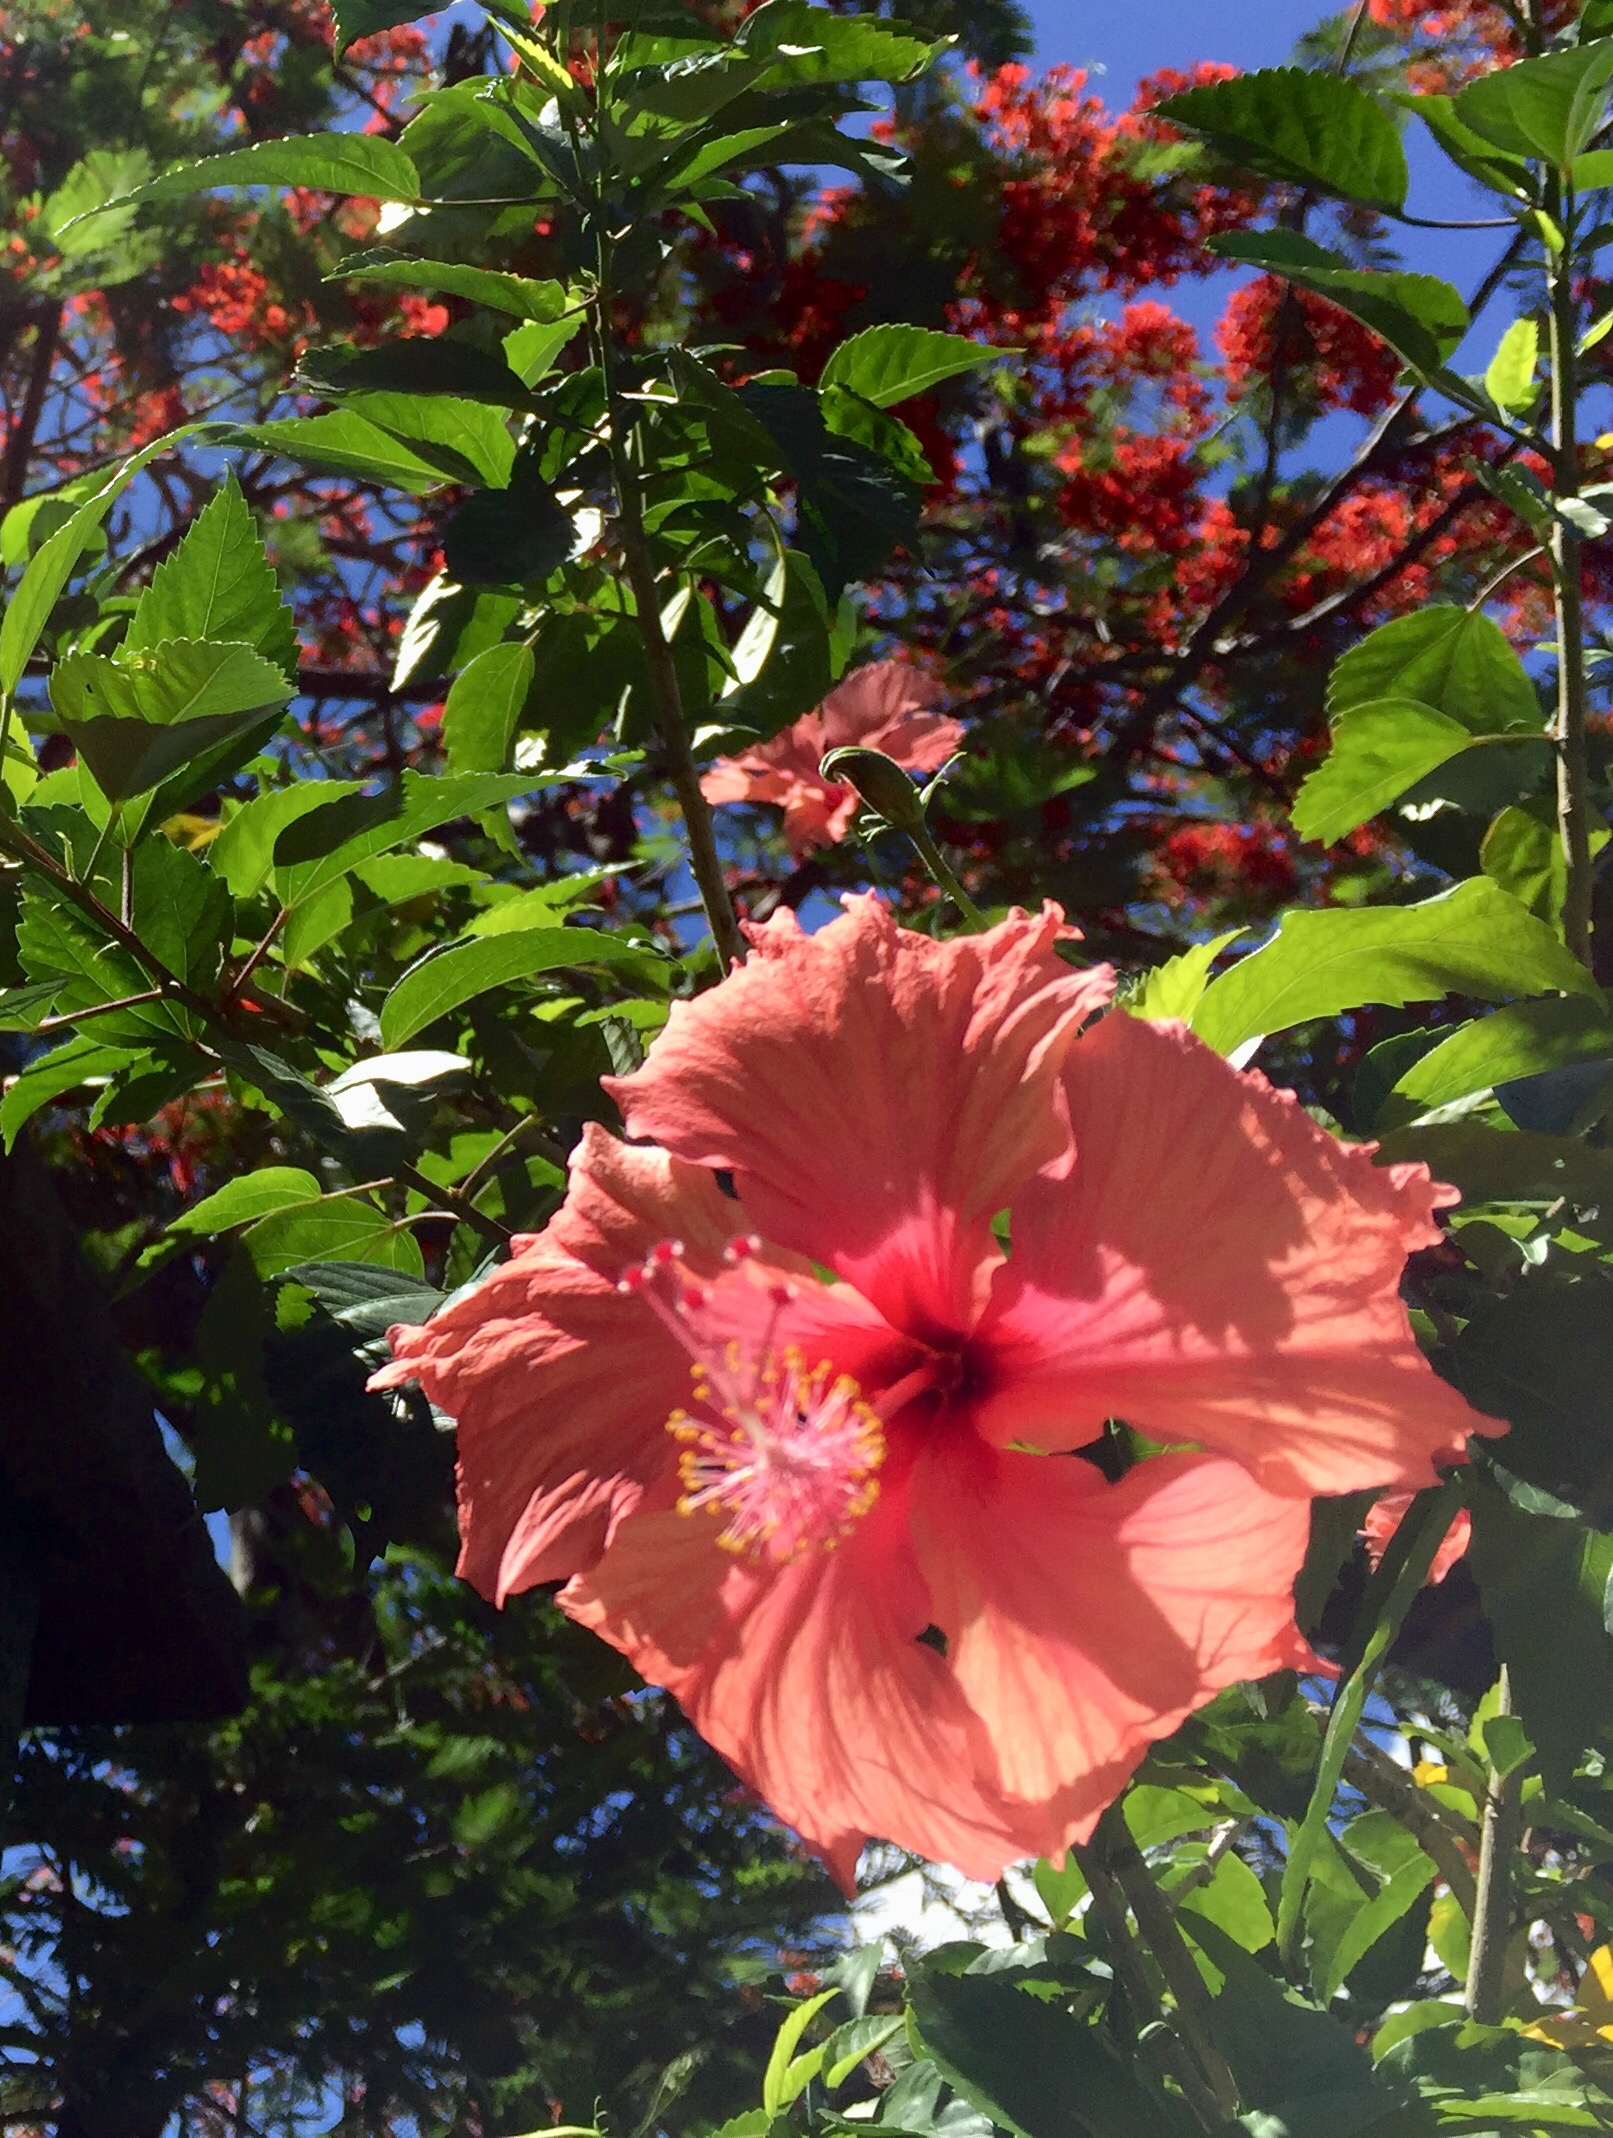 HIbiscus flowers are always in bloom in Moorea, and I would often pluck one to wear in my hair, as is the custom here.